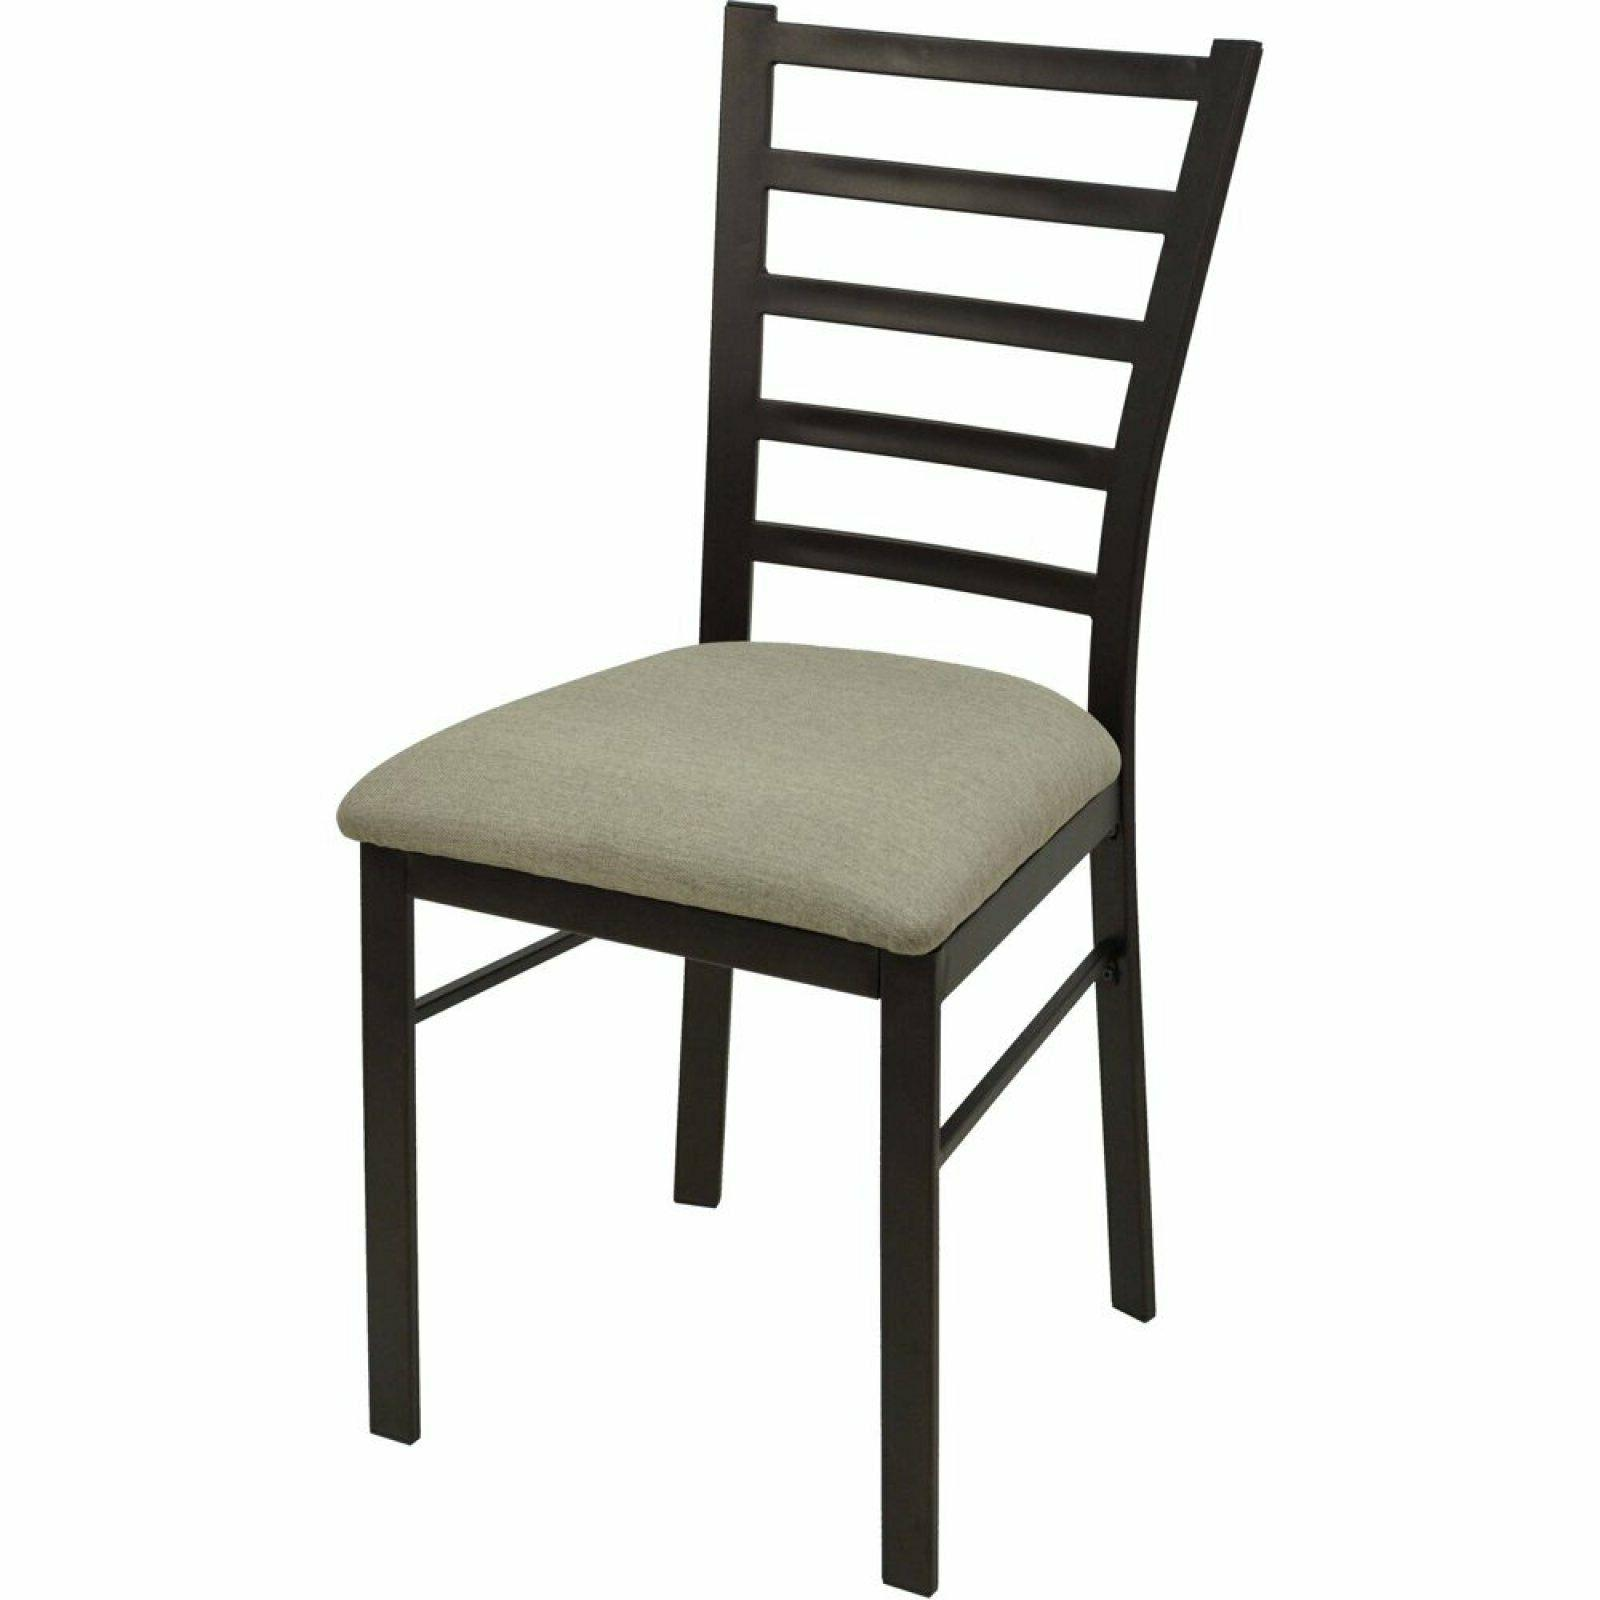 METAL DINING CHAIR Oil Rubbed Bronze Finish Padded Seat Cush